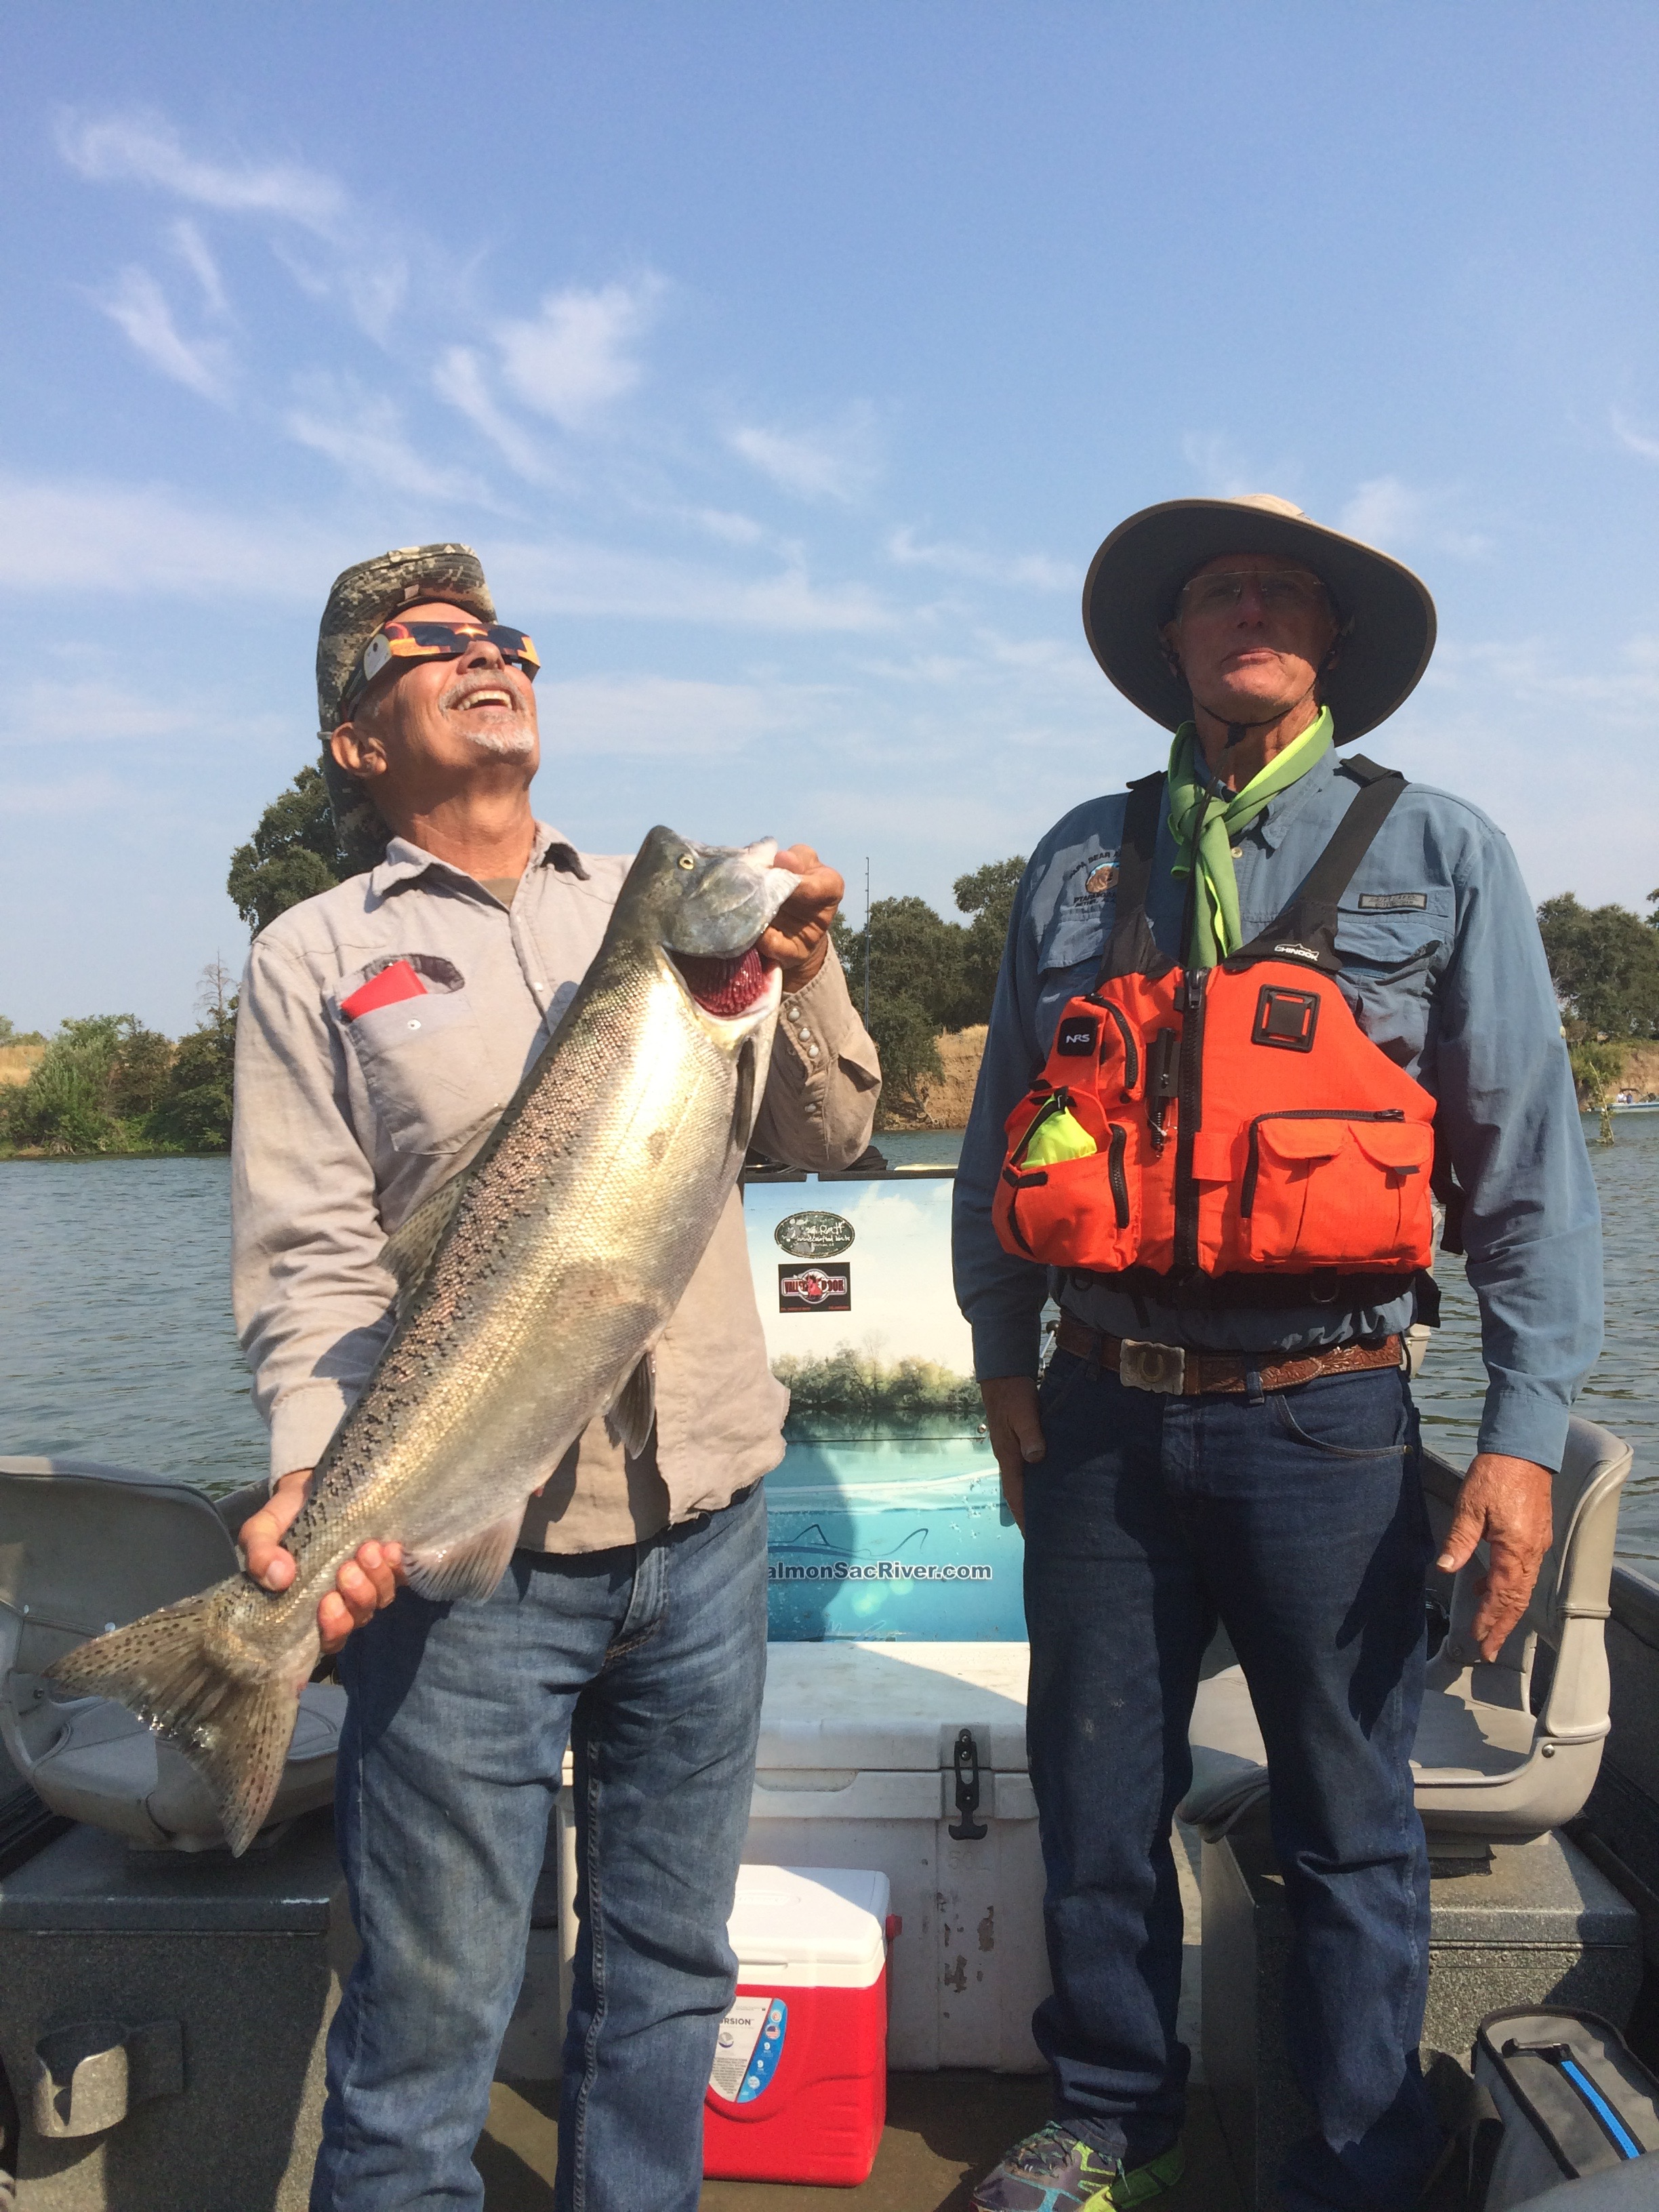 Clients of Mike's Guide Service have their picture taken with a dime bright king salmon they caught at the Outlet Hole during last weeks solar eclipse. Sacramento River Salmon Fishing Guide Mike Rasmussen took the solar eclipse photo of the duo as the moon was already a sliver into the sun.